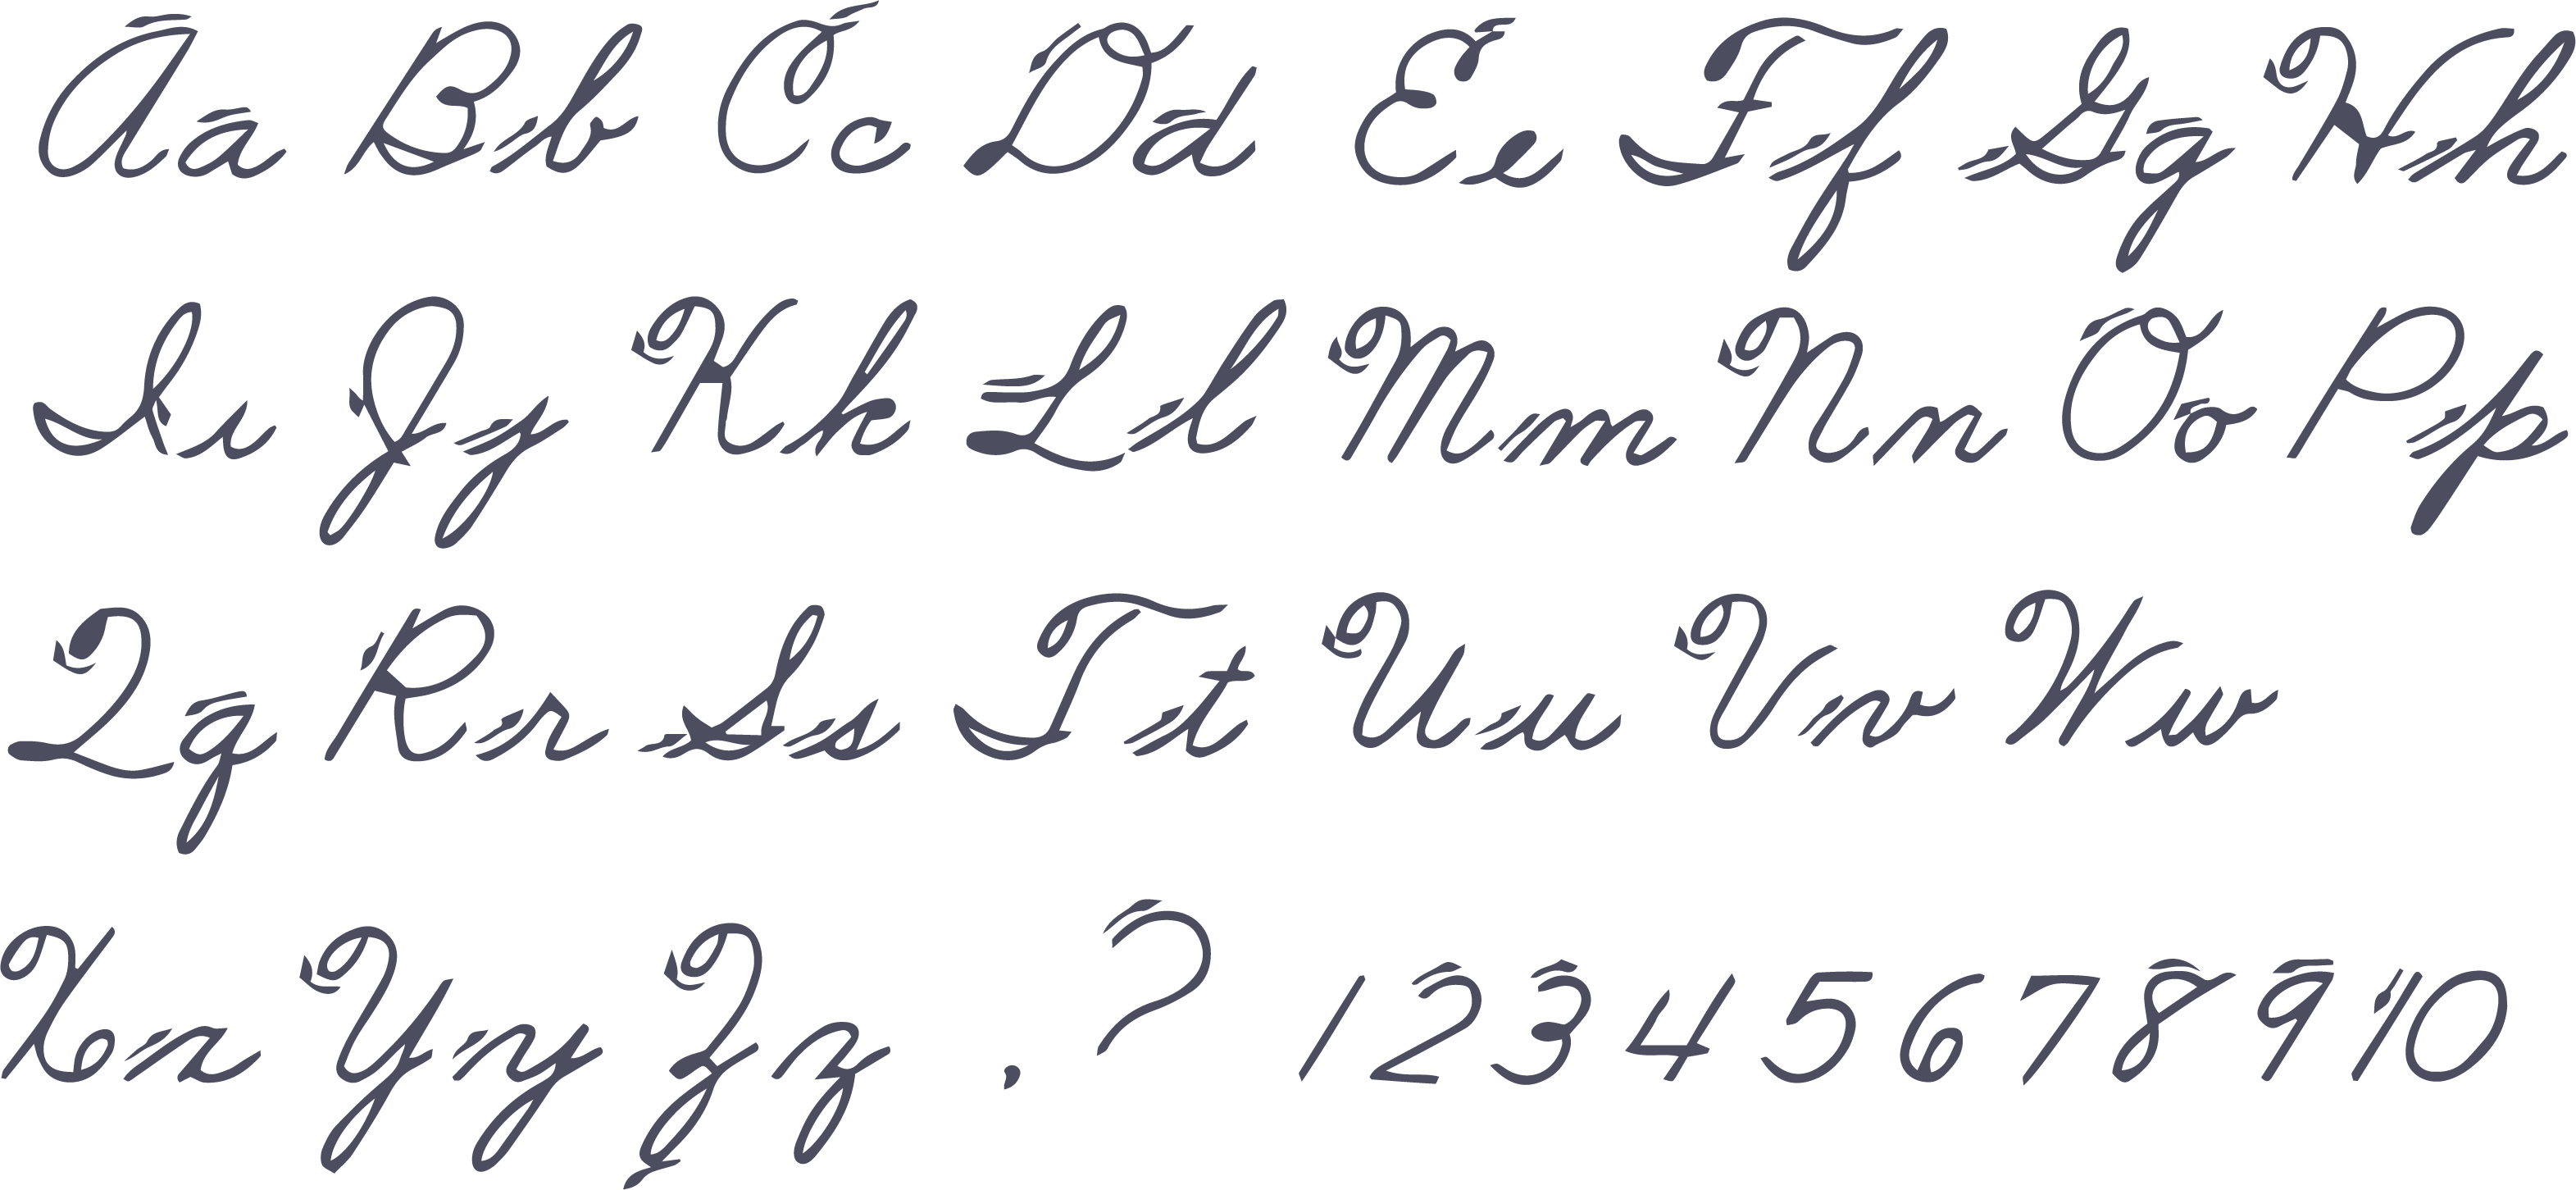 Calligraphy heart clipart picture download Calligraphy Pen Text Clipart Png - Clipartly.comClipartly.com picture download